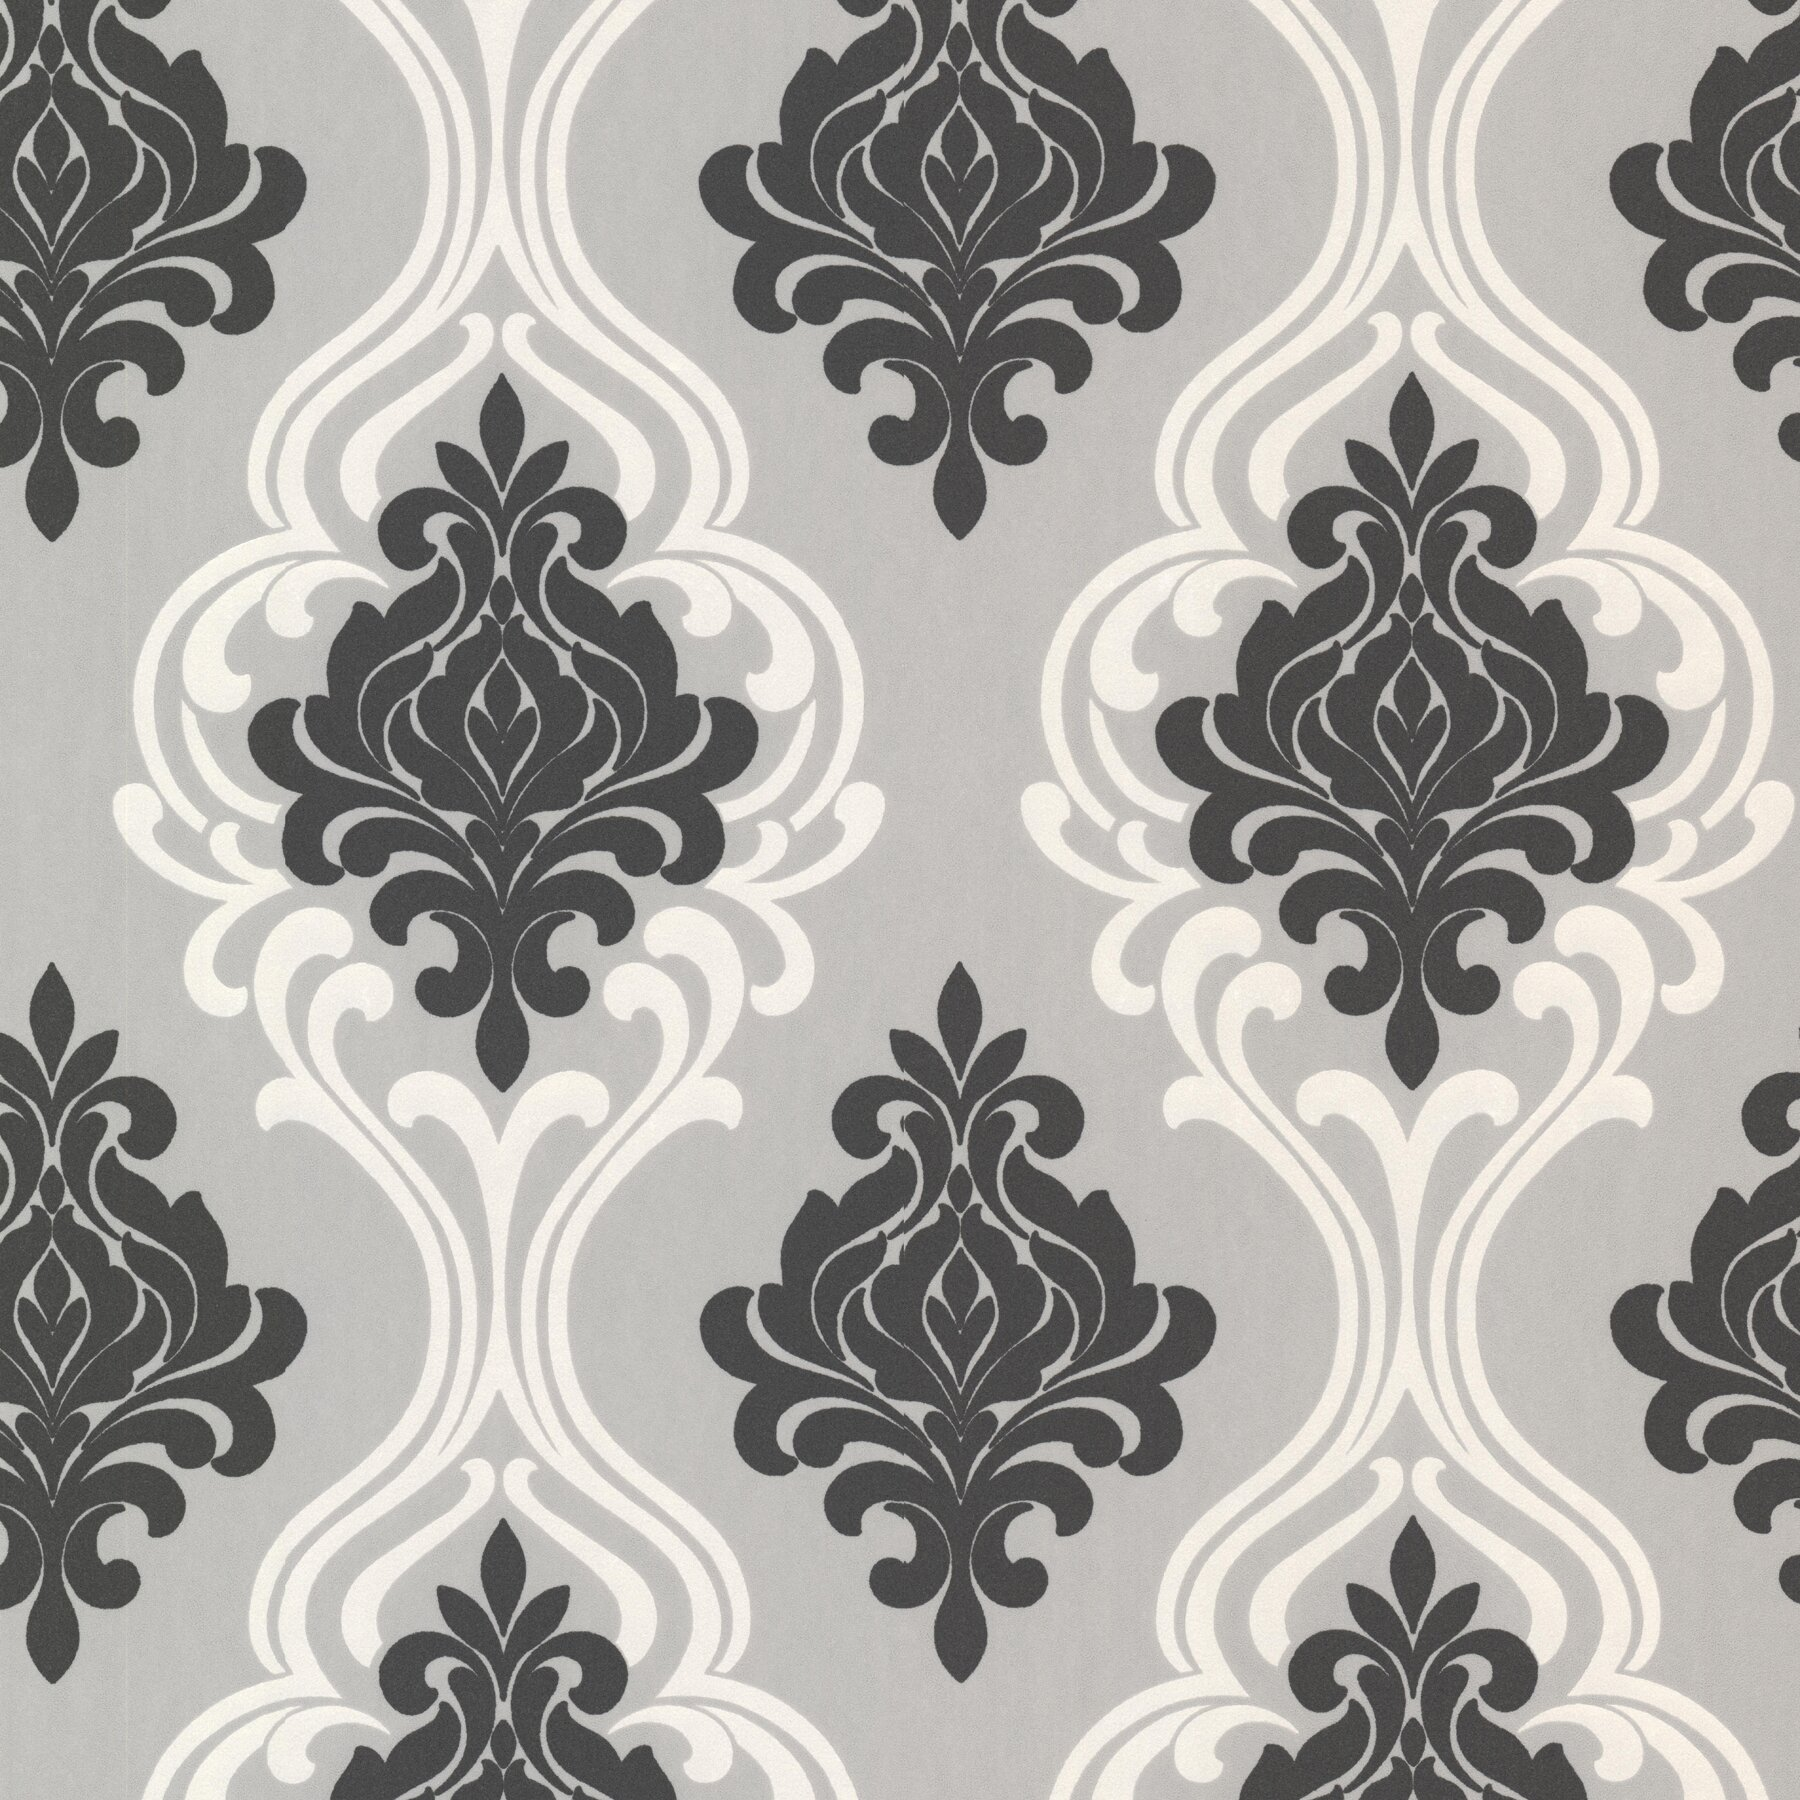 Darby home co westhope indiana 33 39 x 20 5 damask 3d for 3d embossed wallpaper